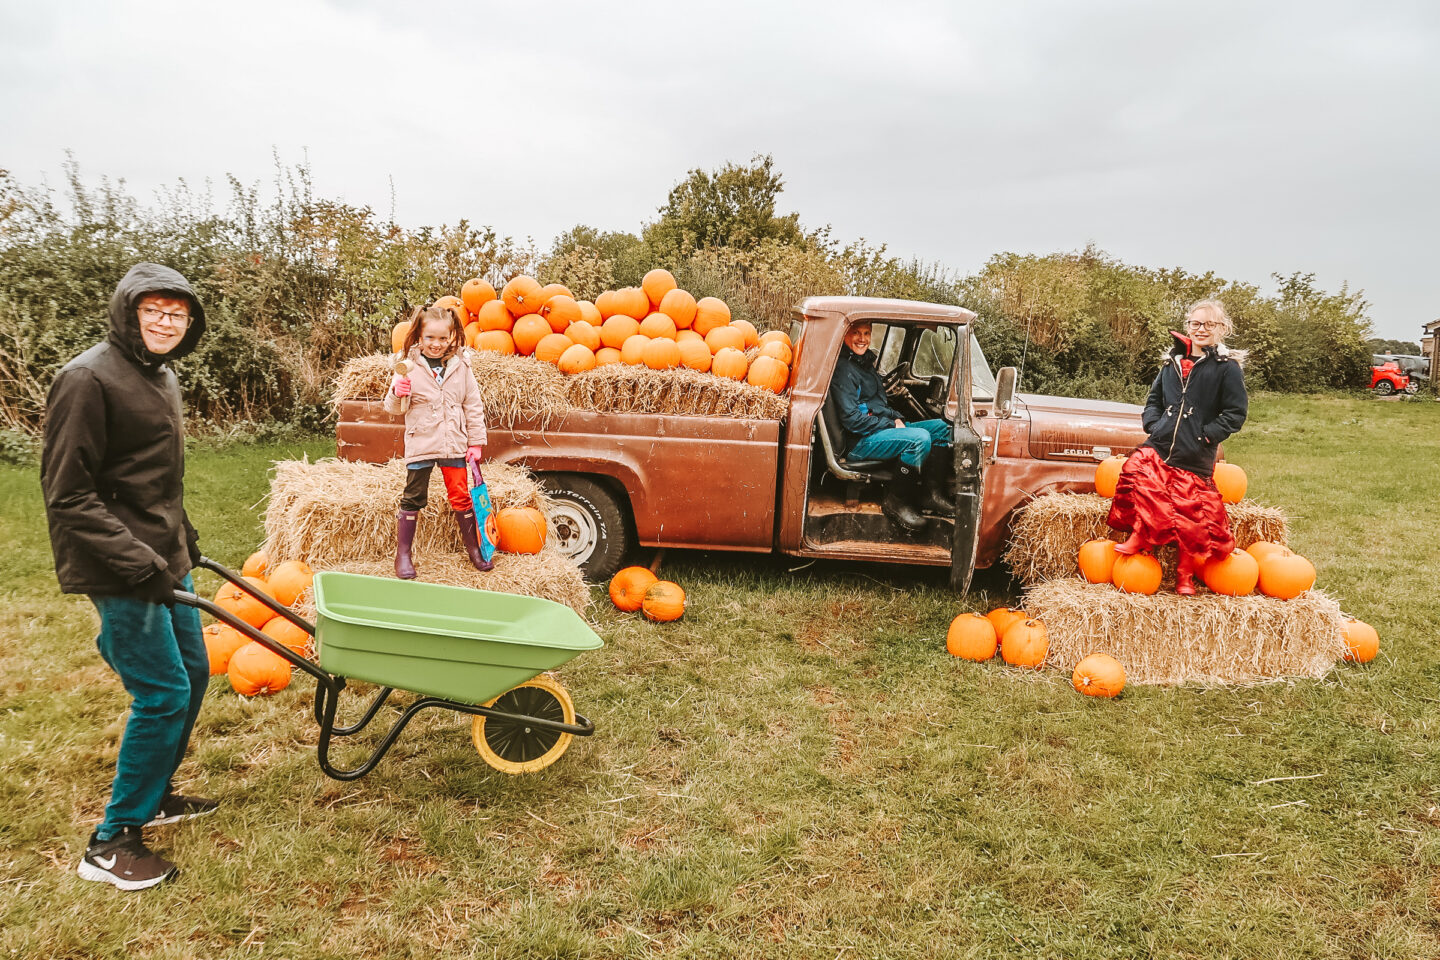 Halloween Farm at Cattows Farm, Leicestershire review